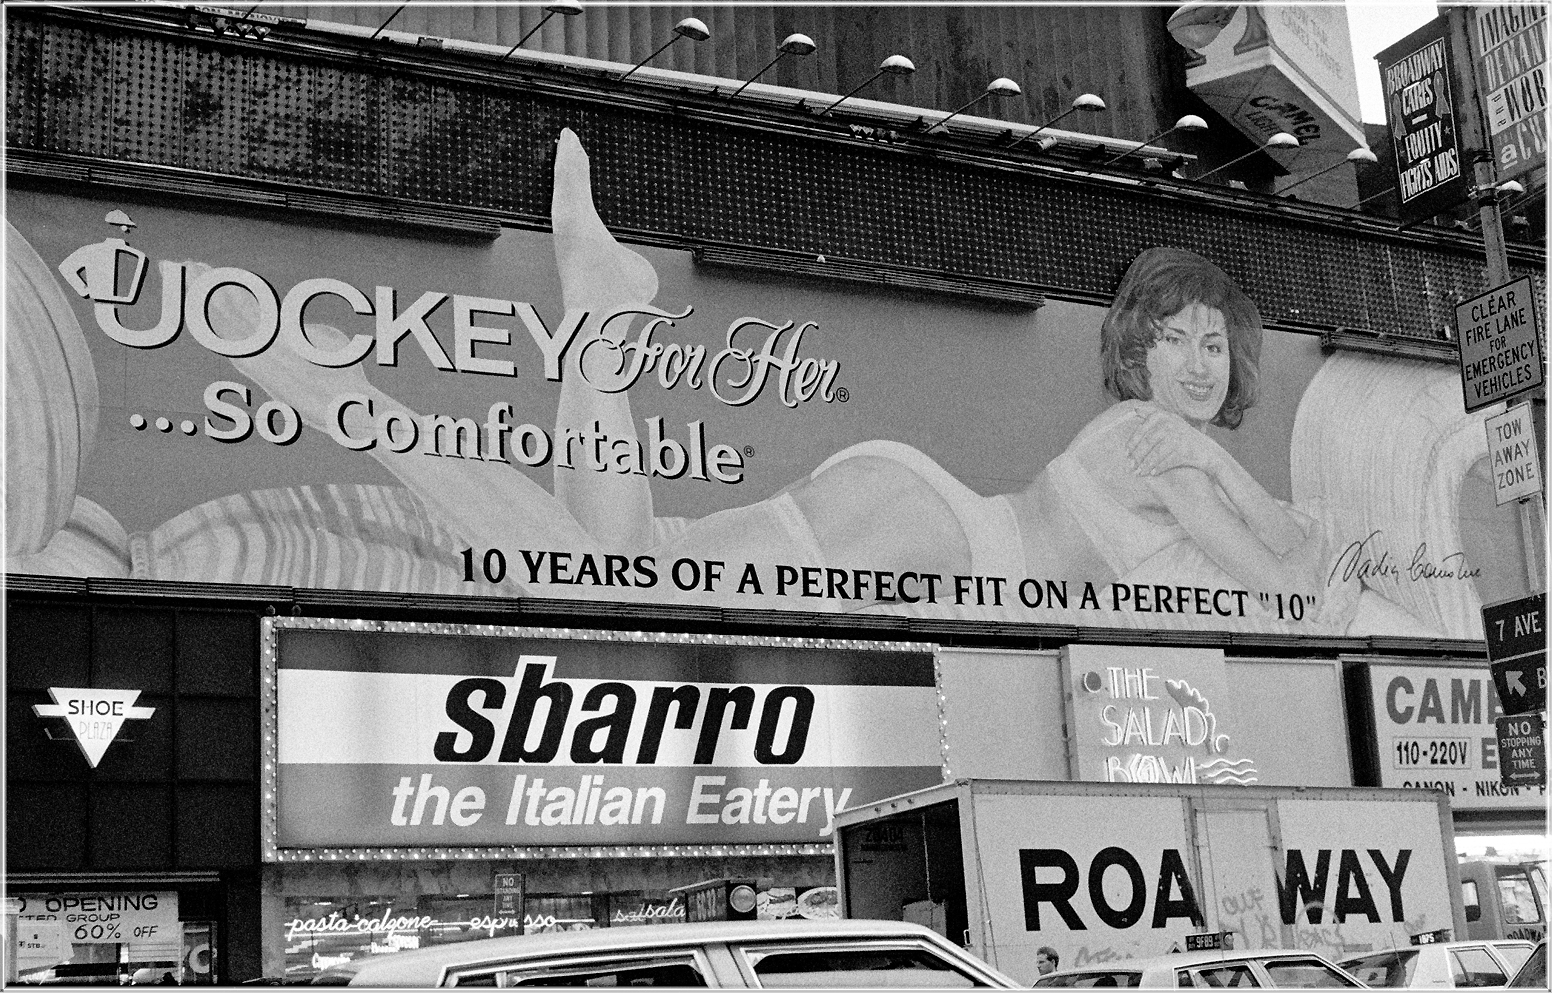 http://mattweberphotos.com/wp-content/uploads/TimesSq-Female-JockeyBillboard-1990-copy.jpg